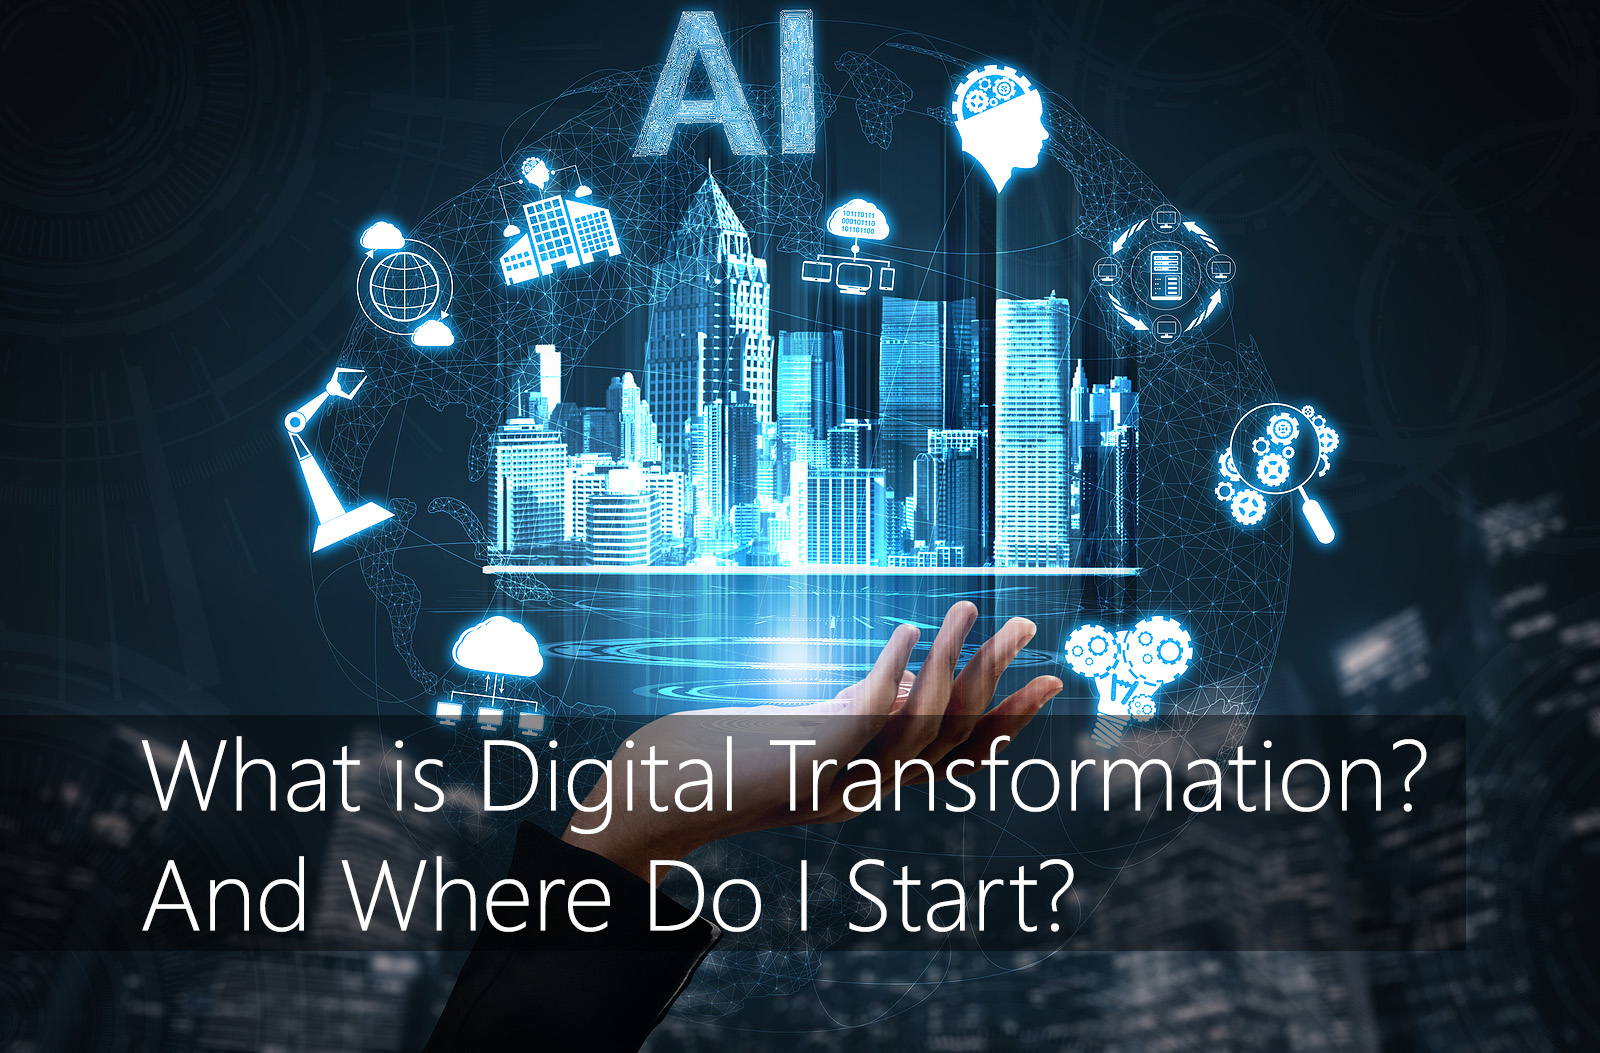 tmc-blog-what-is-digital-transformation-and-where-do-i-start